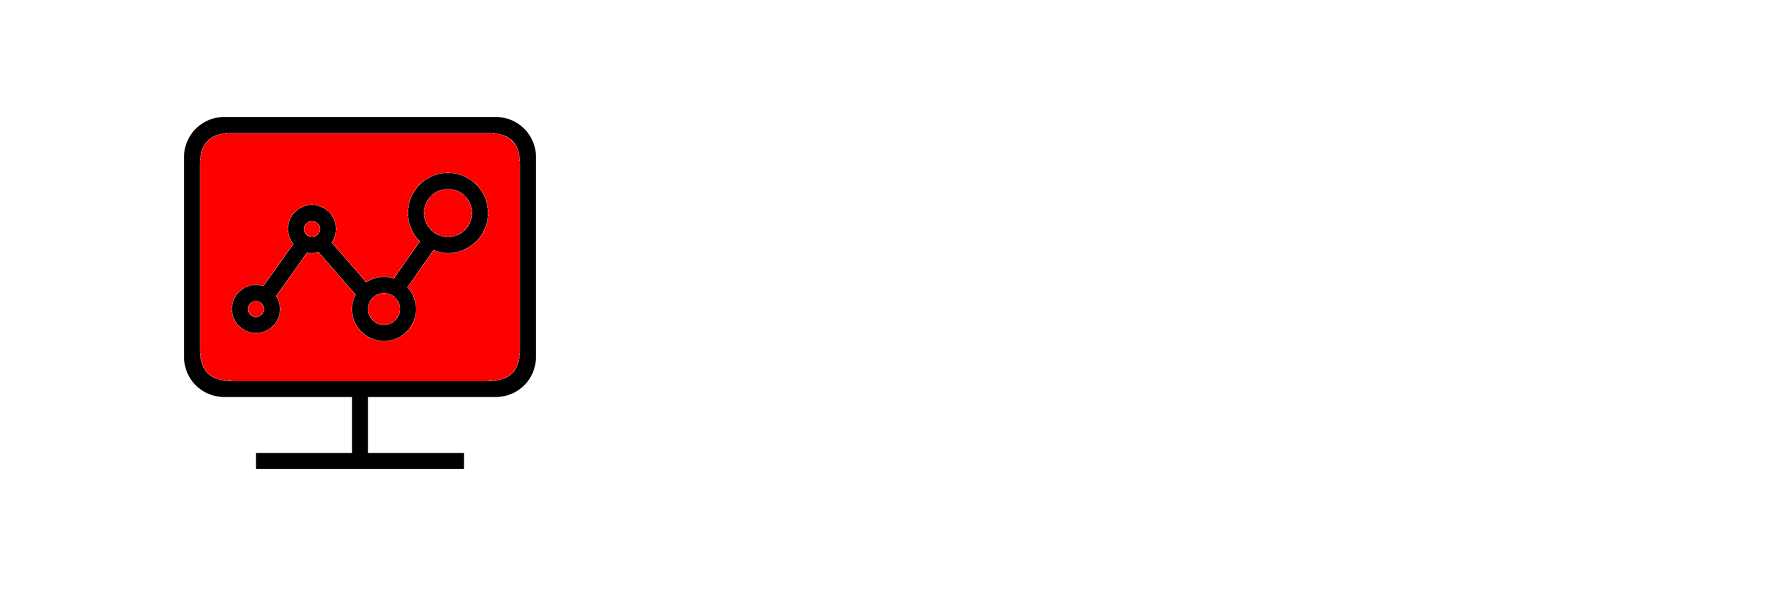 Journal of Soft Computing and Data Mining